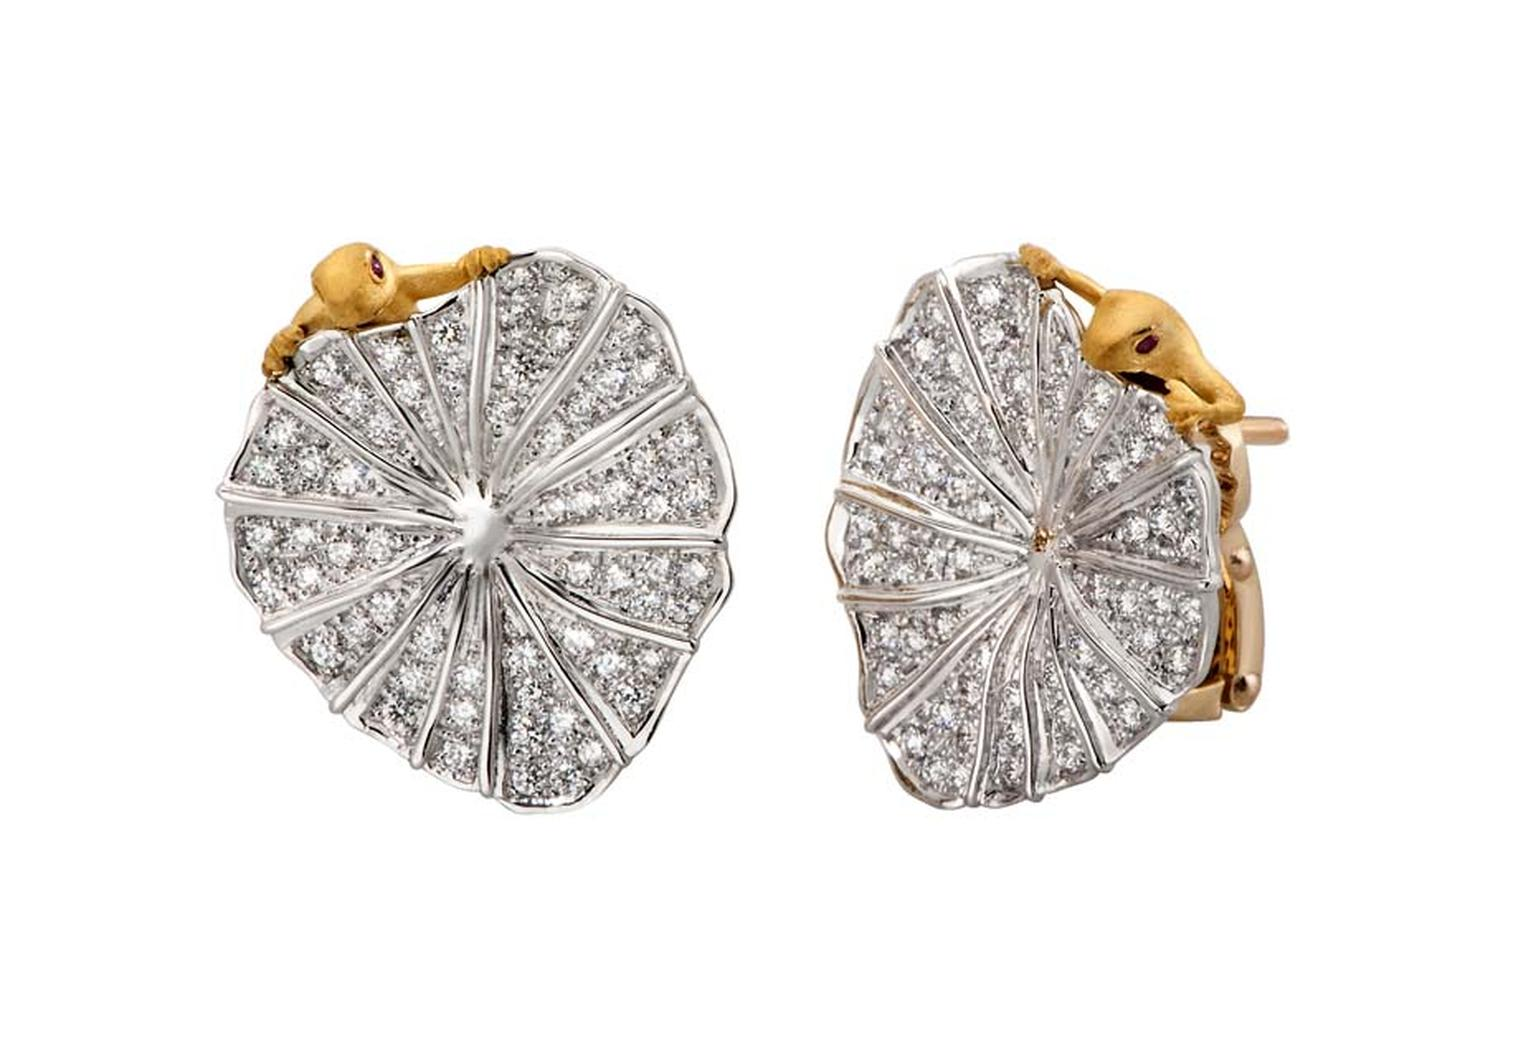 A tribute to immortal love, Carrera y Carrera's frog earrings in white and yellow gold feature diamonds and rubies and are from the new Romance en el Loto collection.